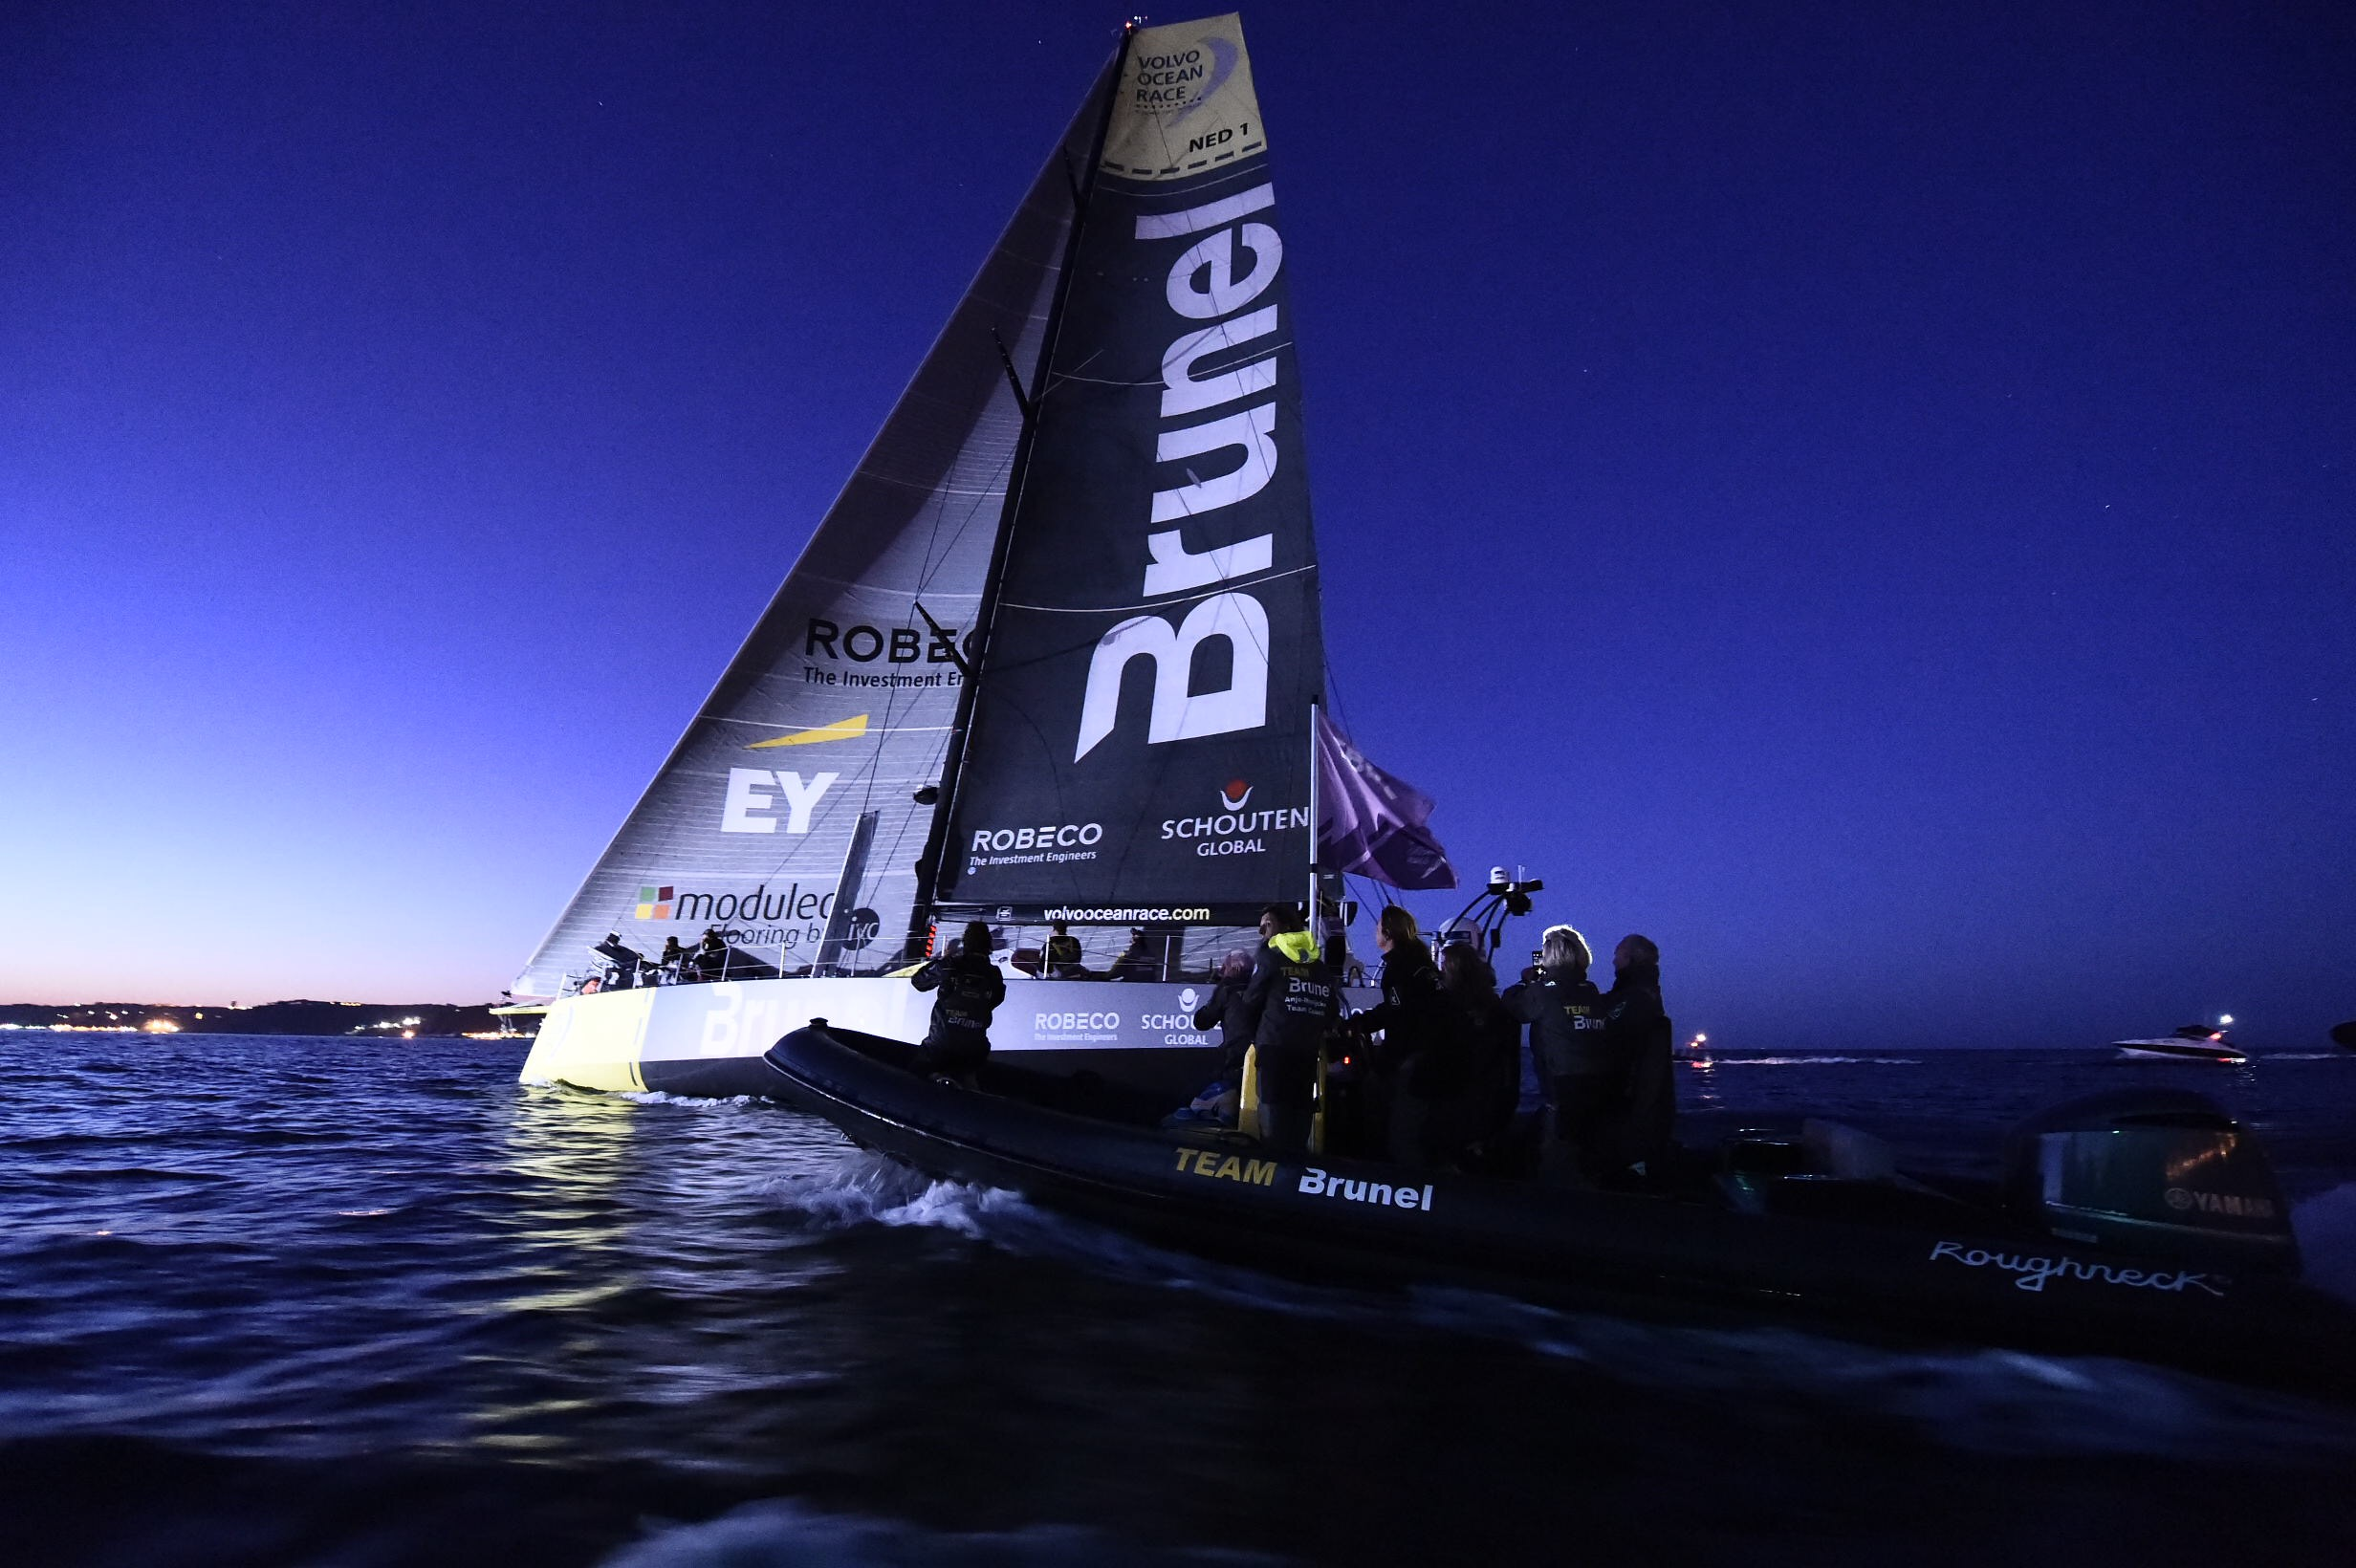 Team Brunel arrives to Lisbon in first position after Leg 7 from Newport. (Ricardo Pinto / Volvo Ocean Race)